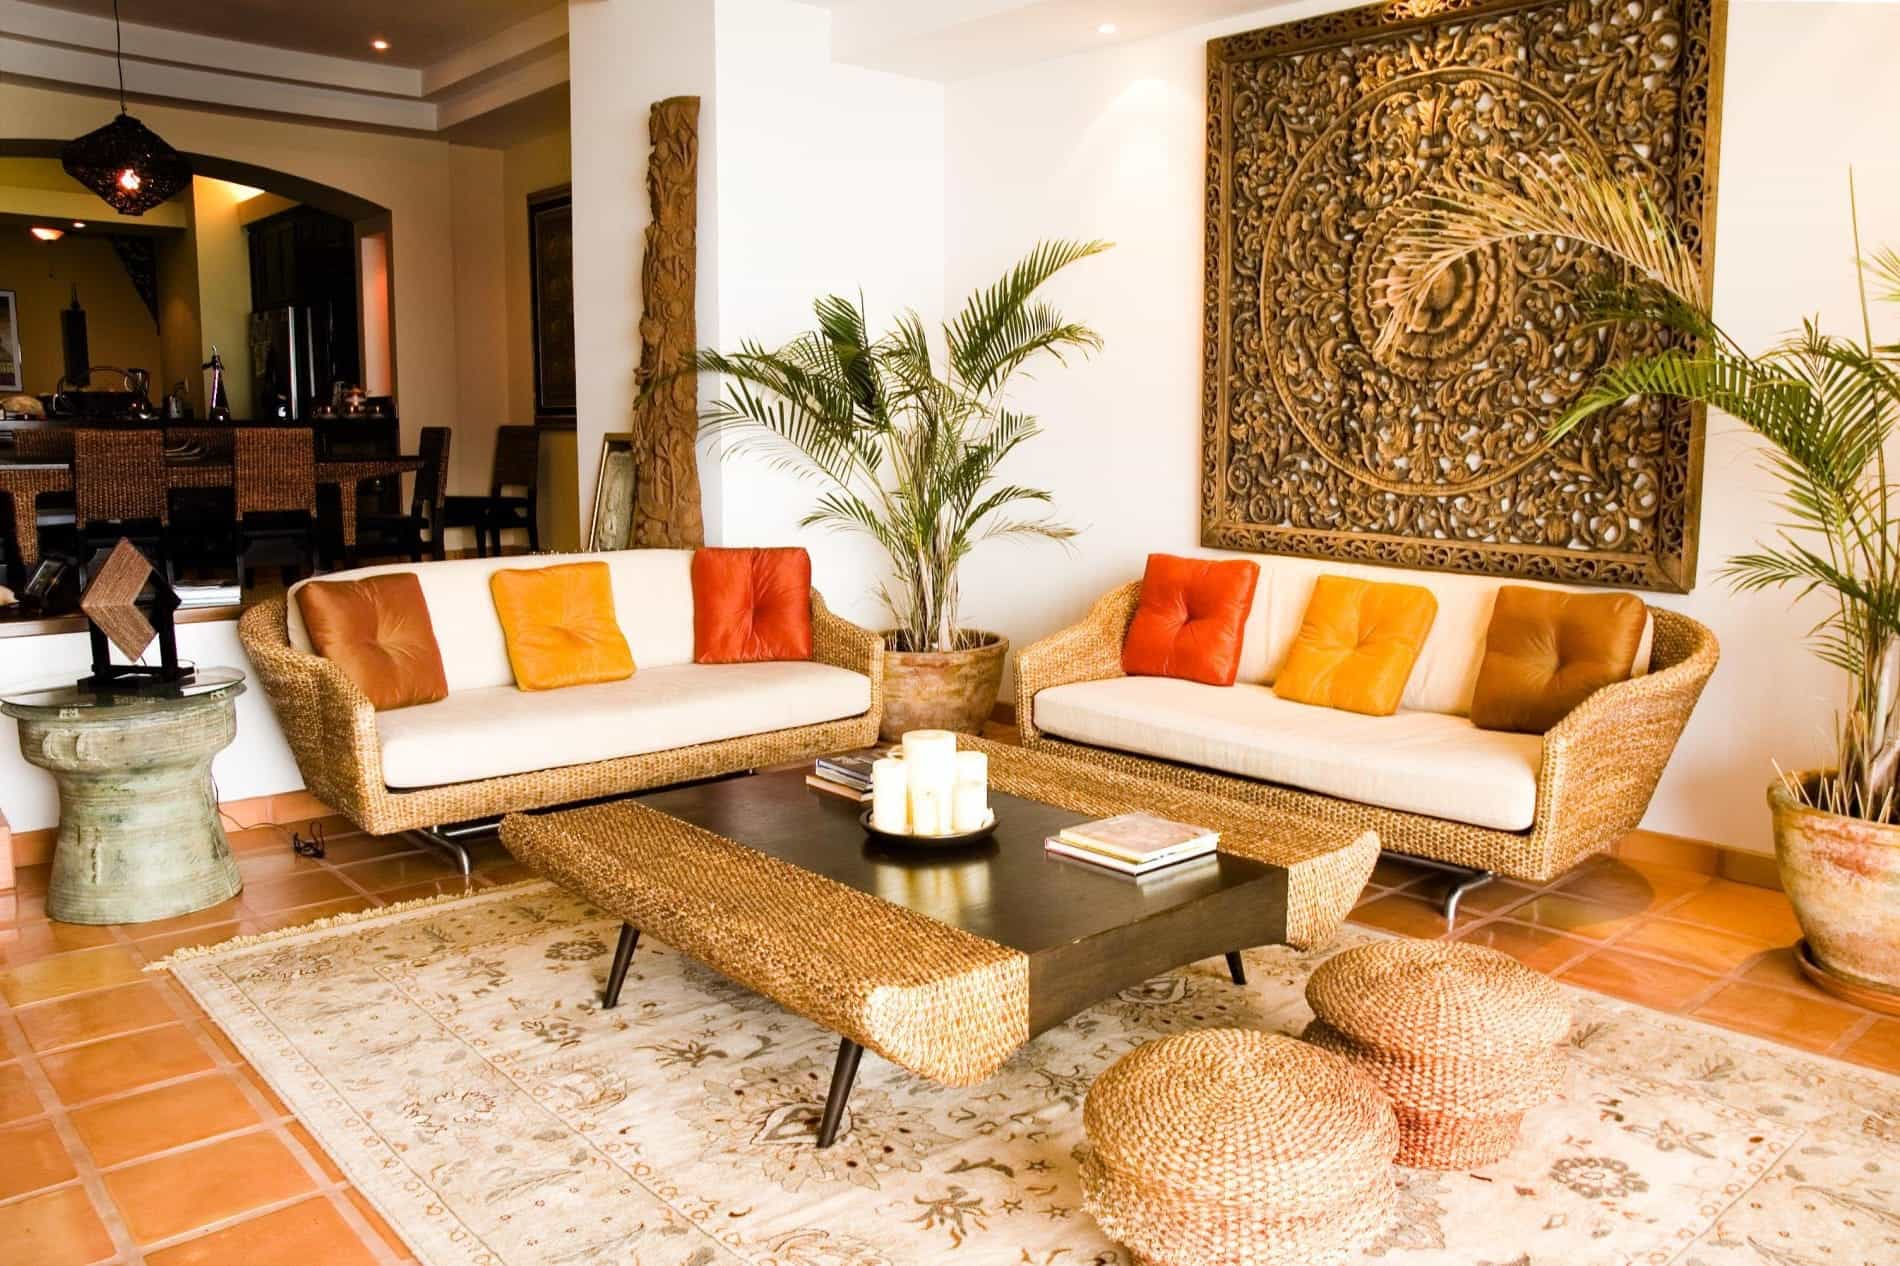 traditional indian living room with oriental rattan chairs